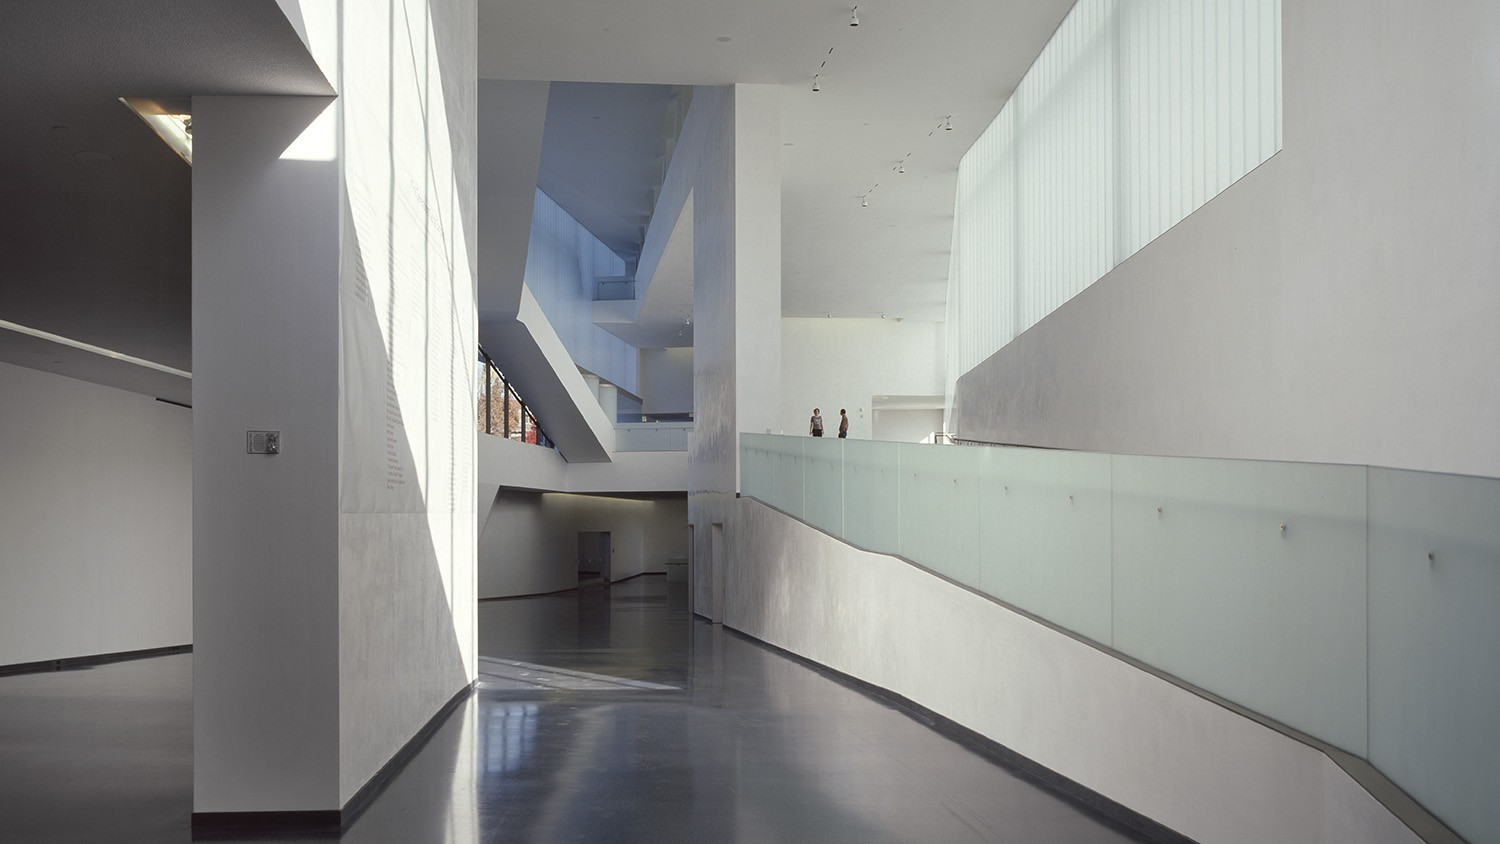 The nelson atkins museum of art steven holl architects for Home holl